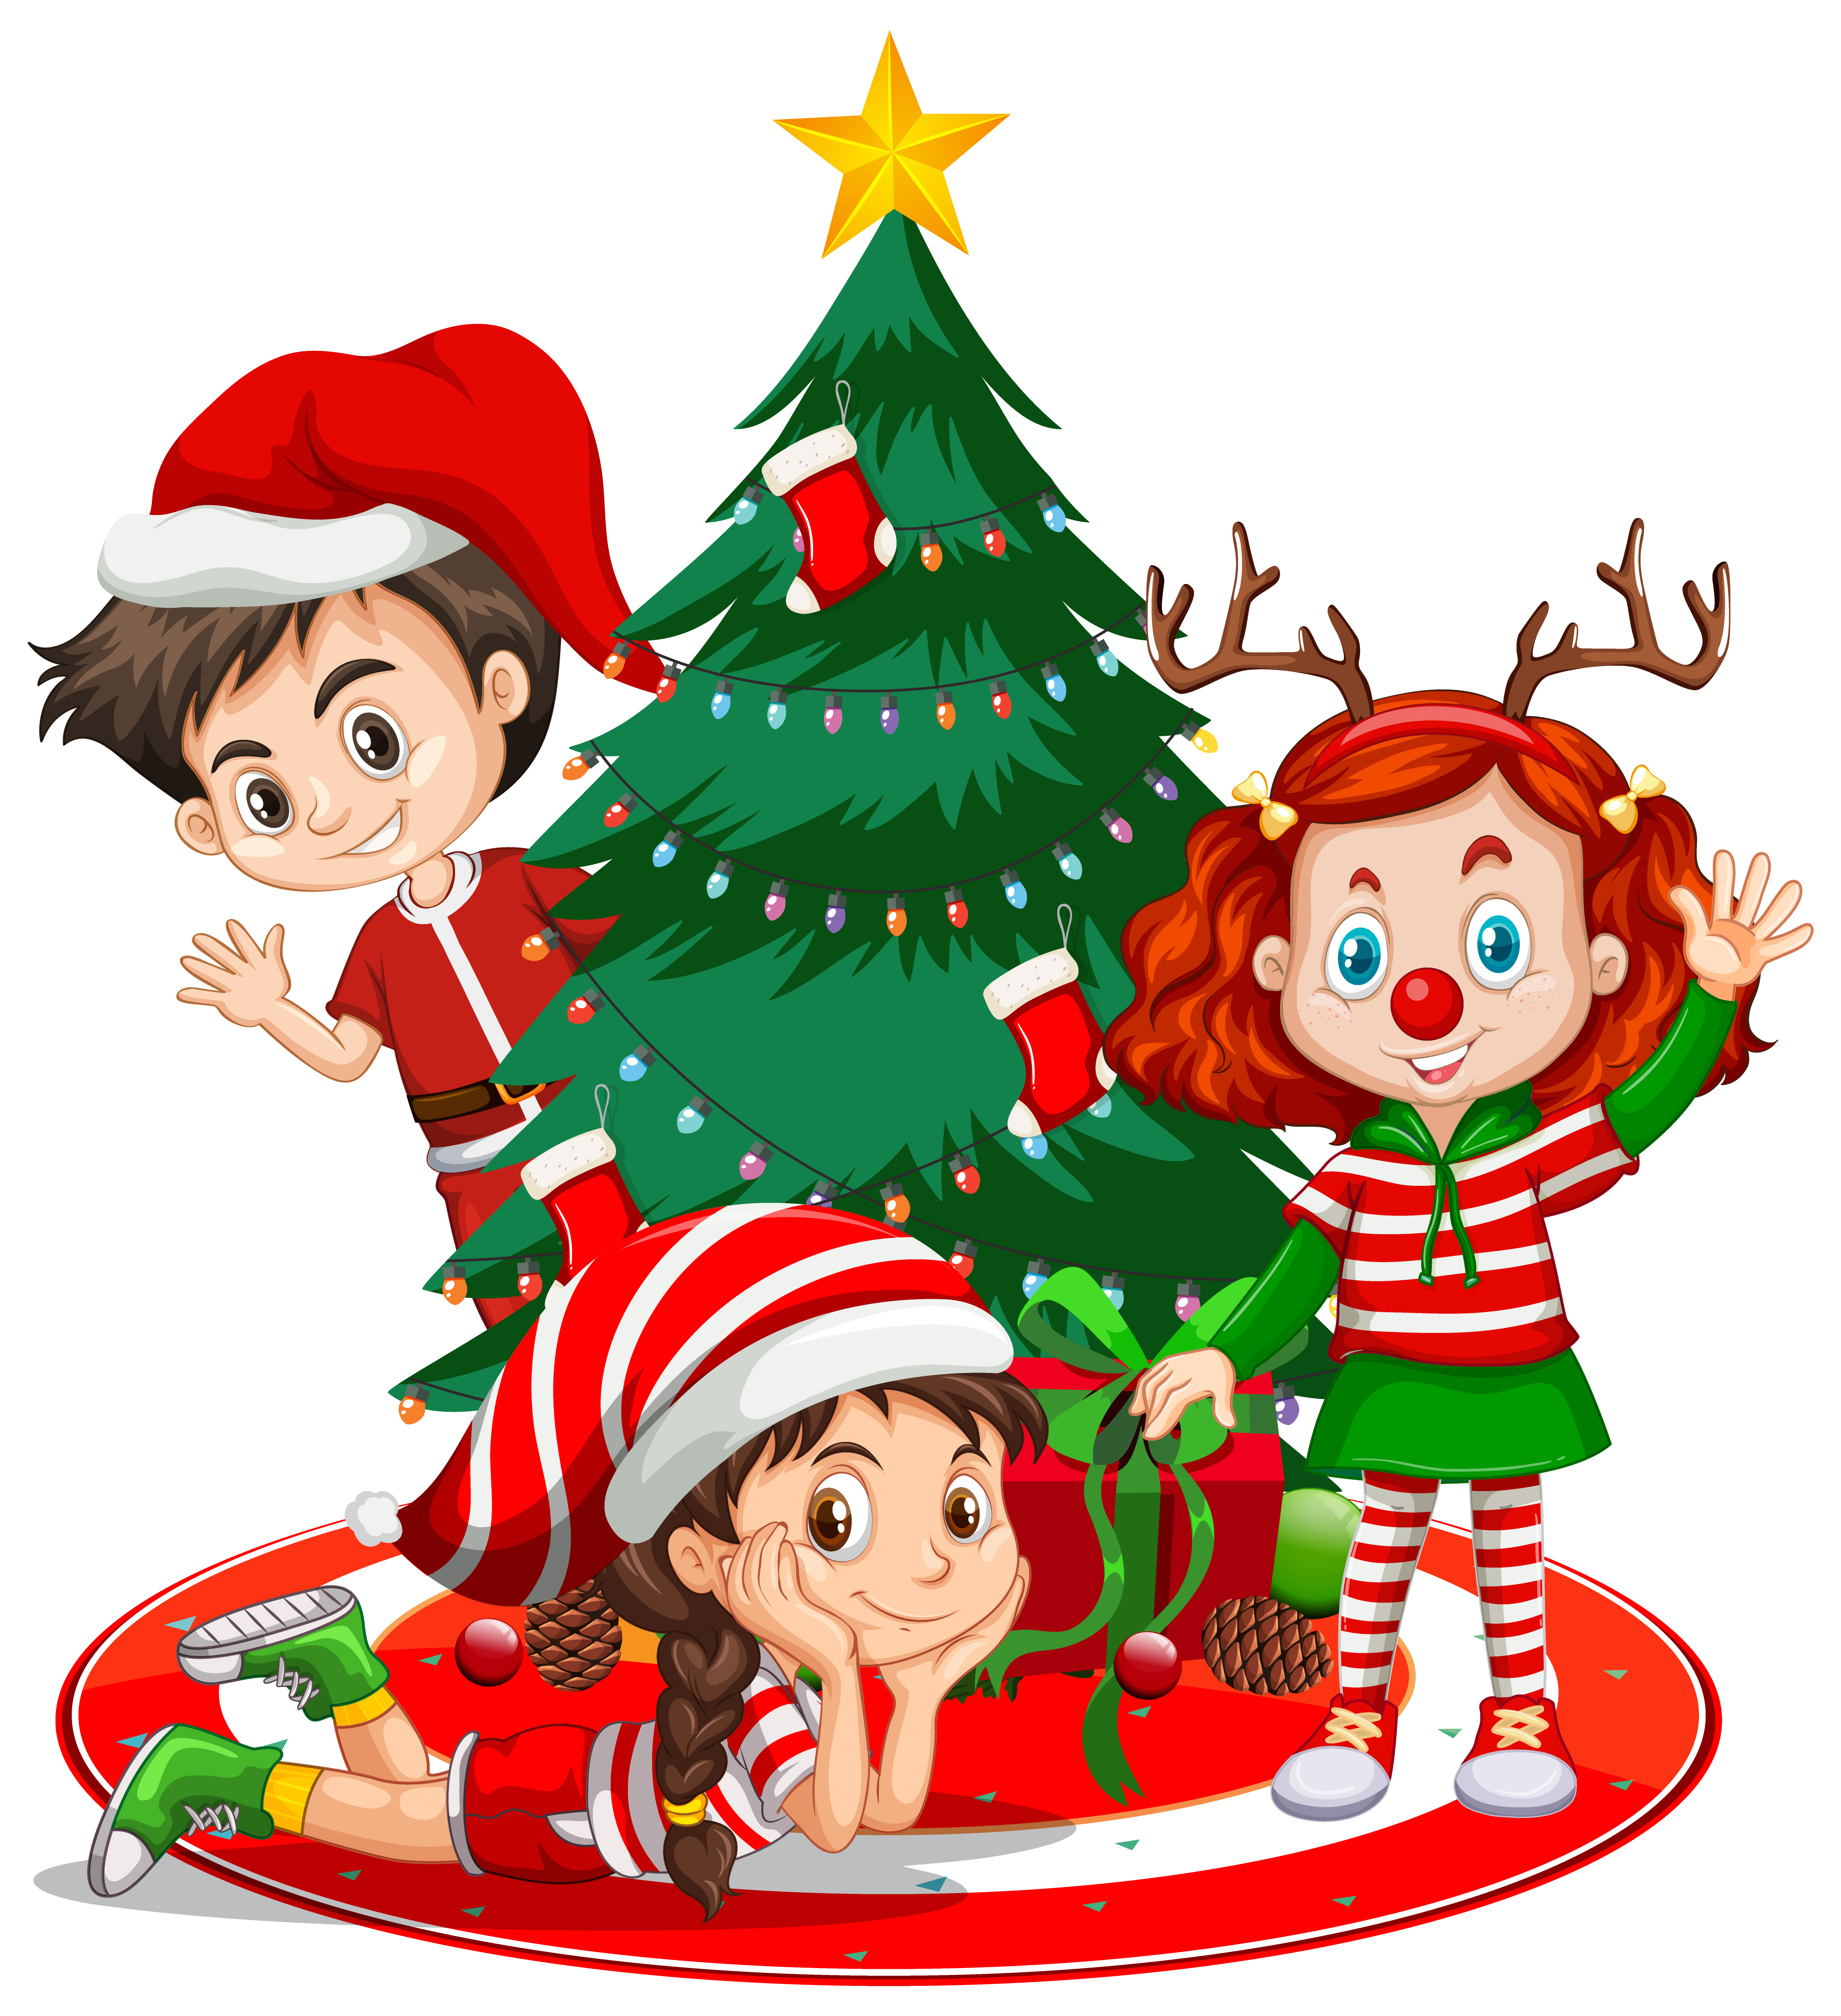 Children Wear Christmas Costume Cartoon Character With Christmas Tree On White Background Download Free Vectors Clipart Graphics Vector Art 13,000+ vectors, stock photos & psd files. vecteezy